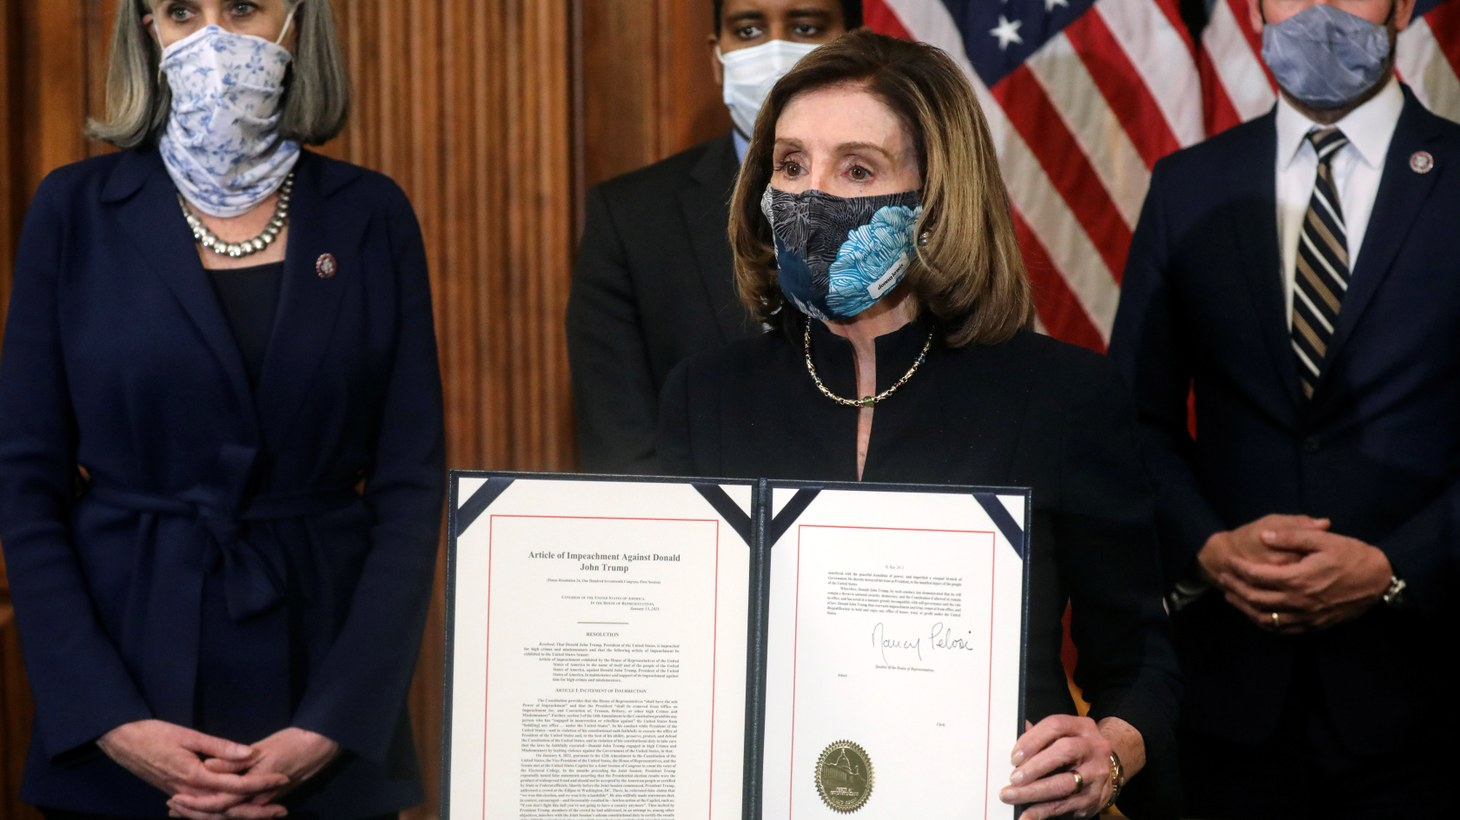 U.S. House Speaker Nancy Pelosi (D-CA) shows the article of impeachment against U.S. President Donald Trump after signing it in an engrossment ceremony, at the U.S. Capitol in Washington January 13, 2021.